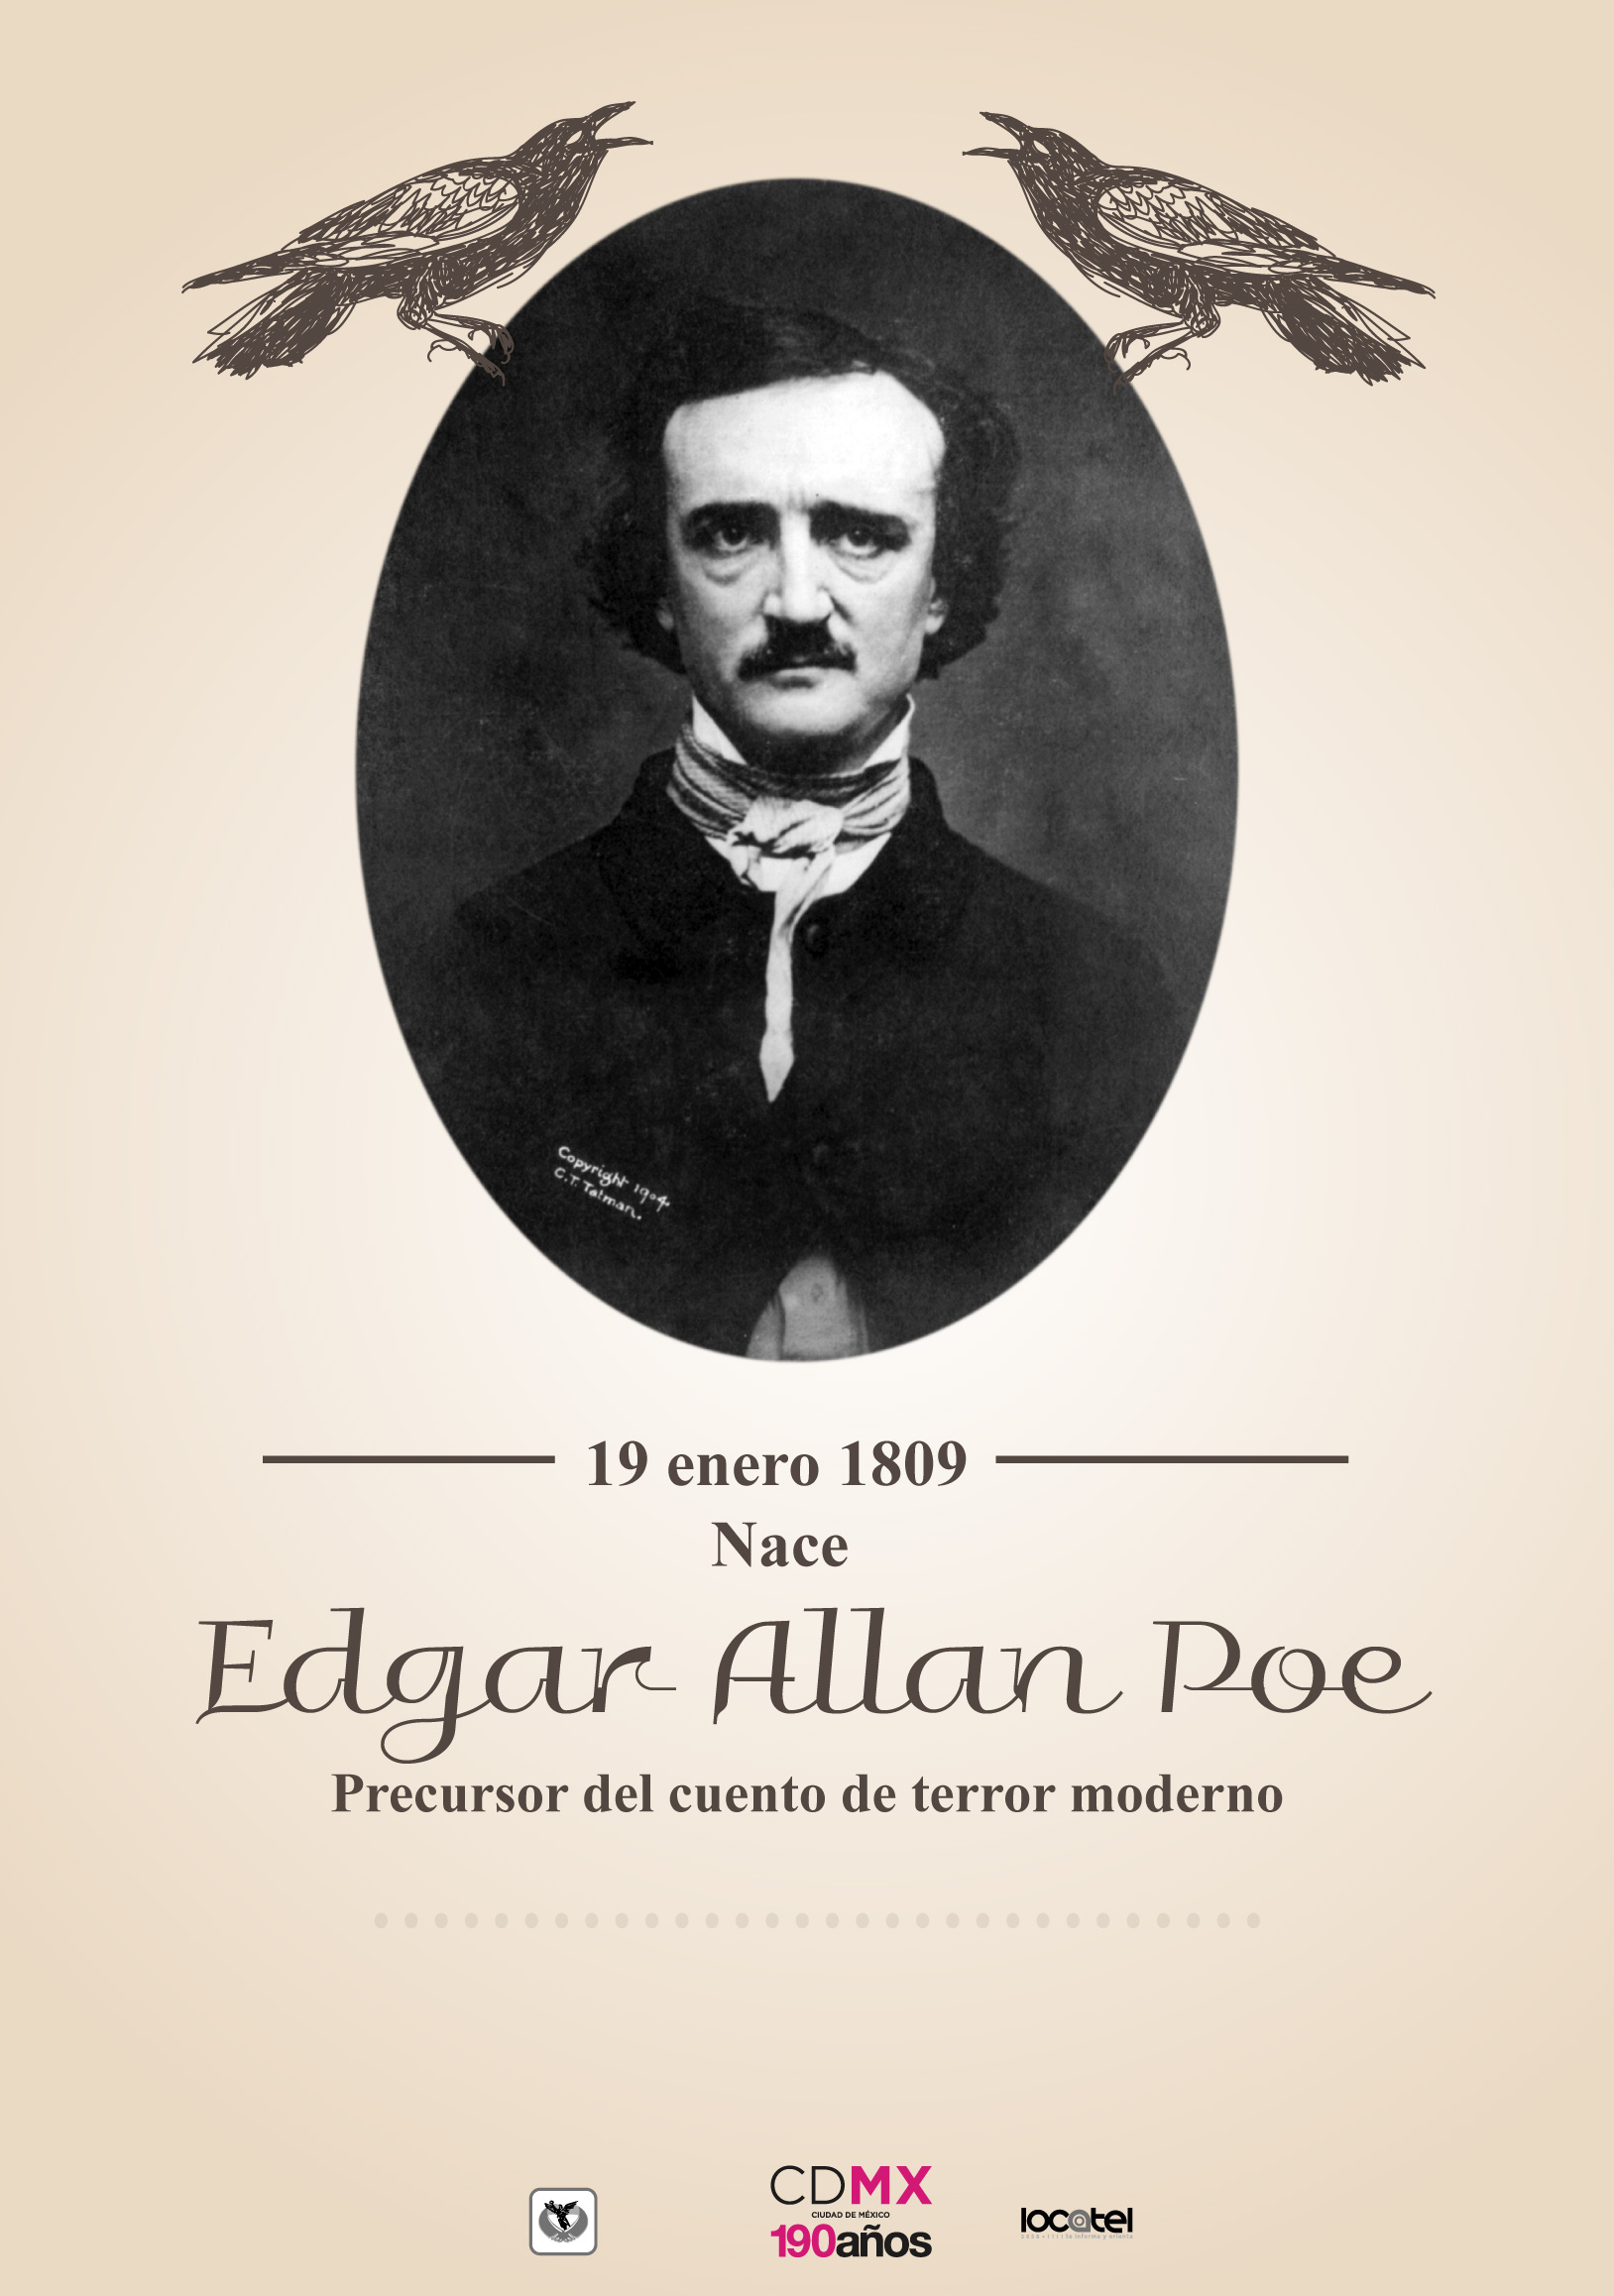 understanding edgar allan poe The philosophy of composition is an 1846 essay written by american writer edgar allan poe that elucidates a theory about how good writers write when they write well he concludes that length, unity of effect and a logical method are important considerations for good writing.